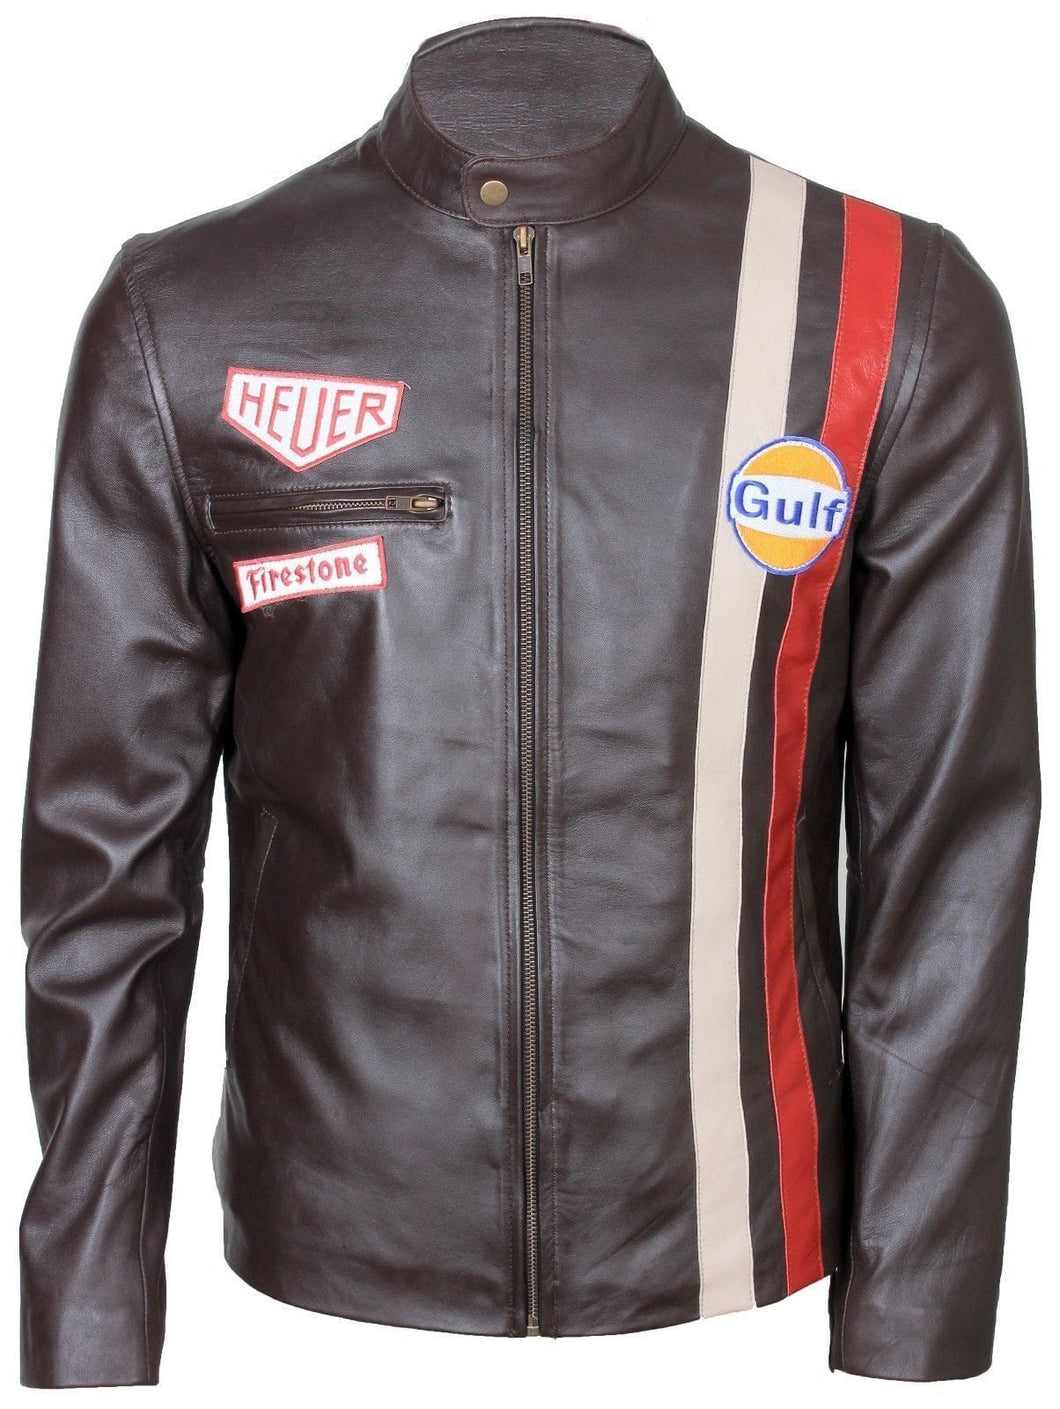 leather404 Clothing, Shoes & Accessories:Men's Clothing:Coats & Jackets s Steve McQueen White Red Stripped Grand Prix Gulf Dark Brown Leather Jacket